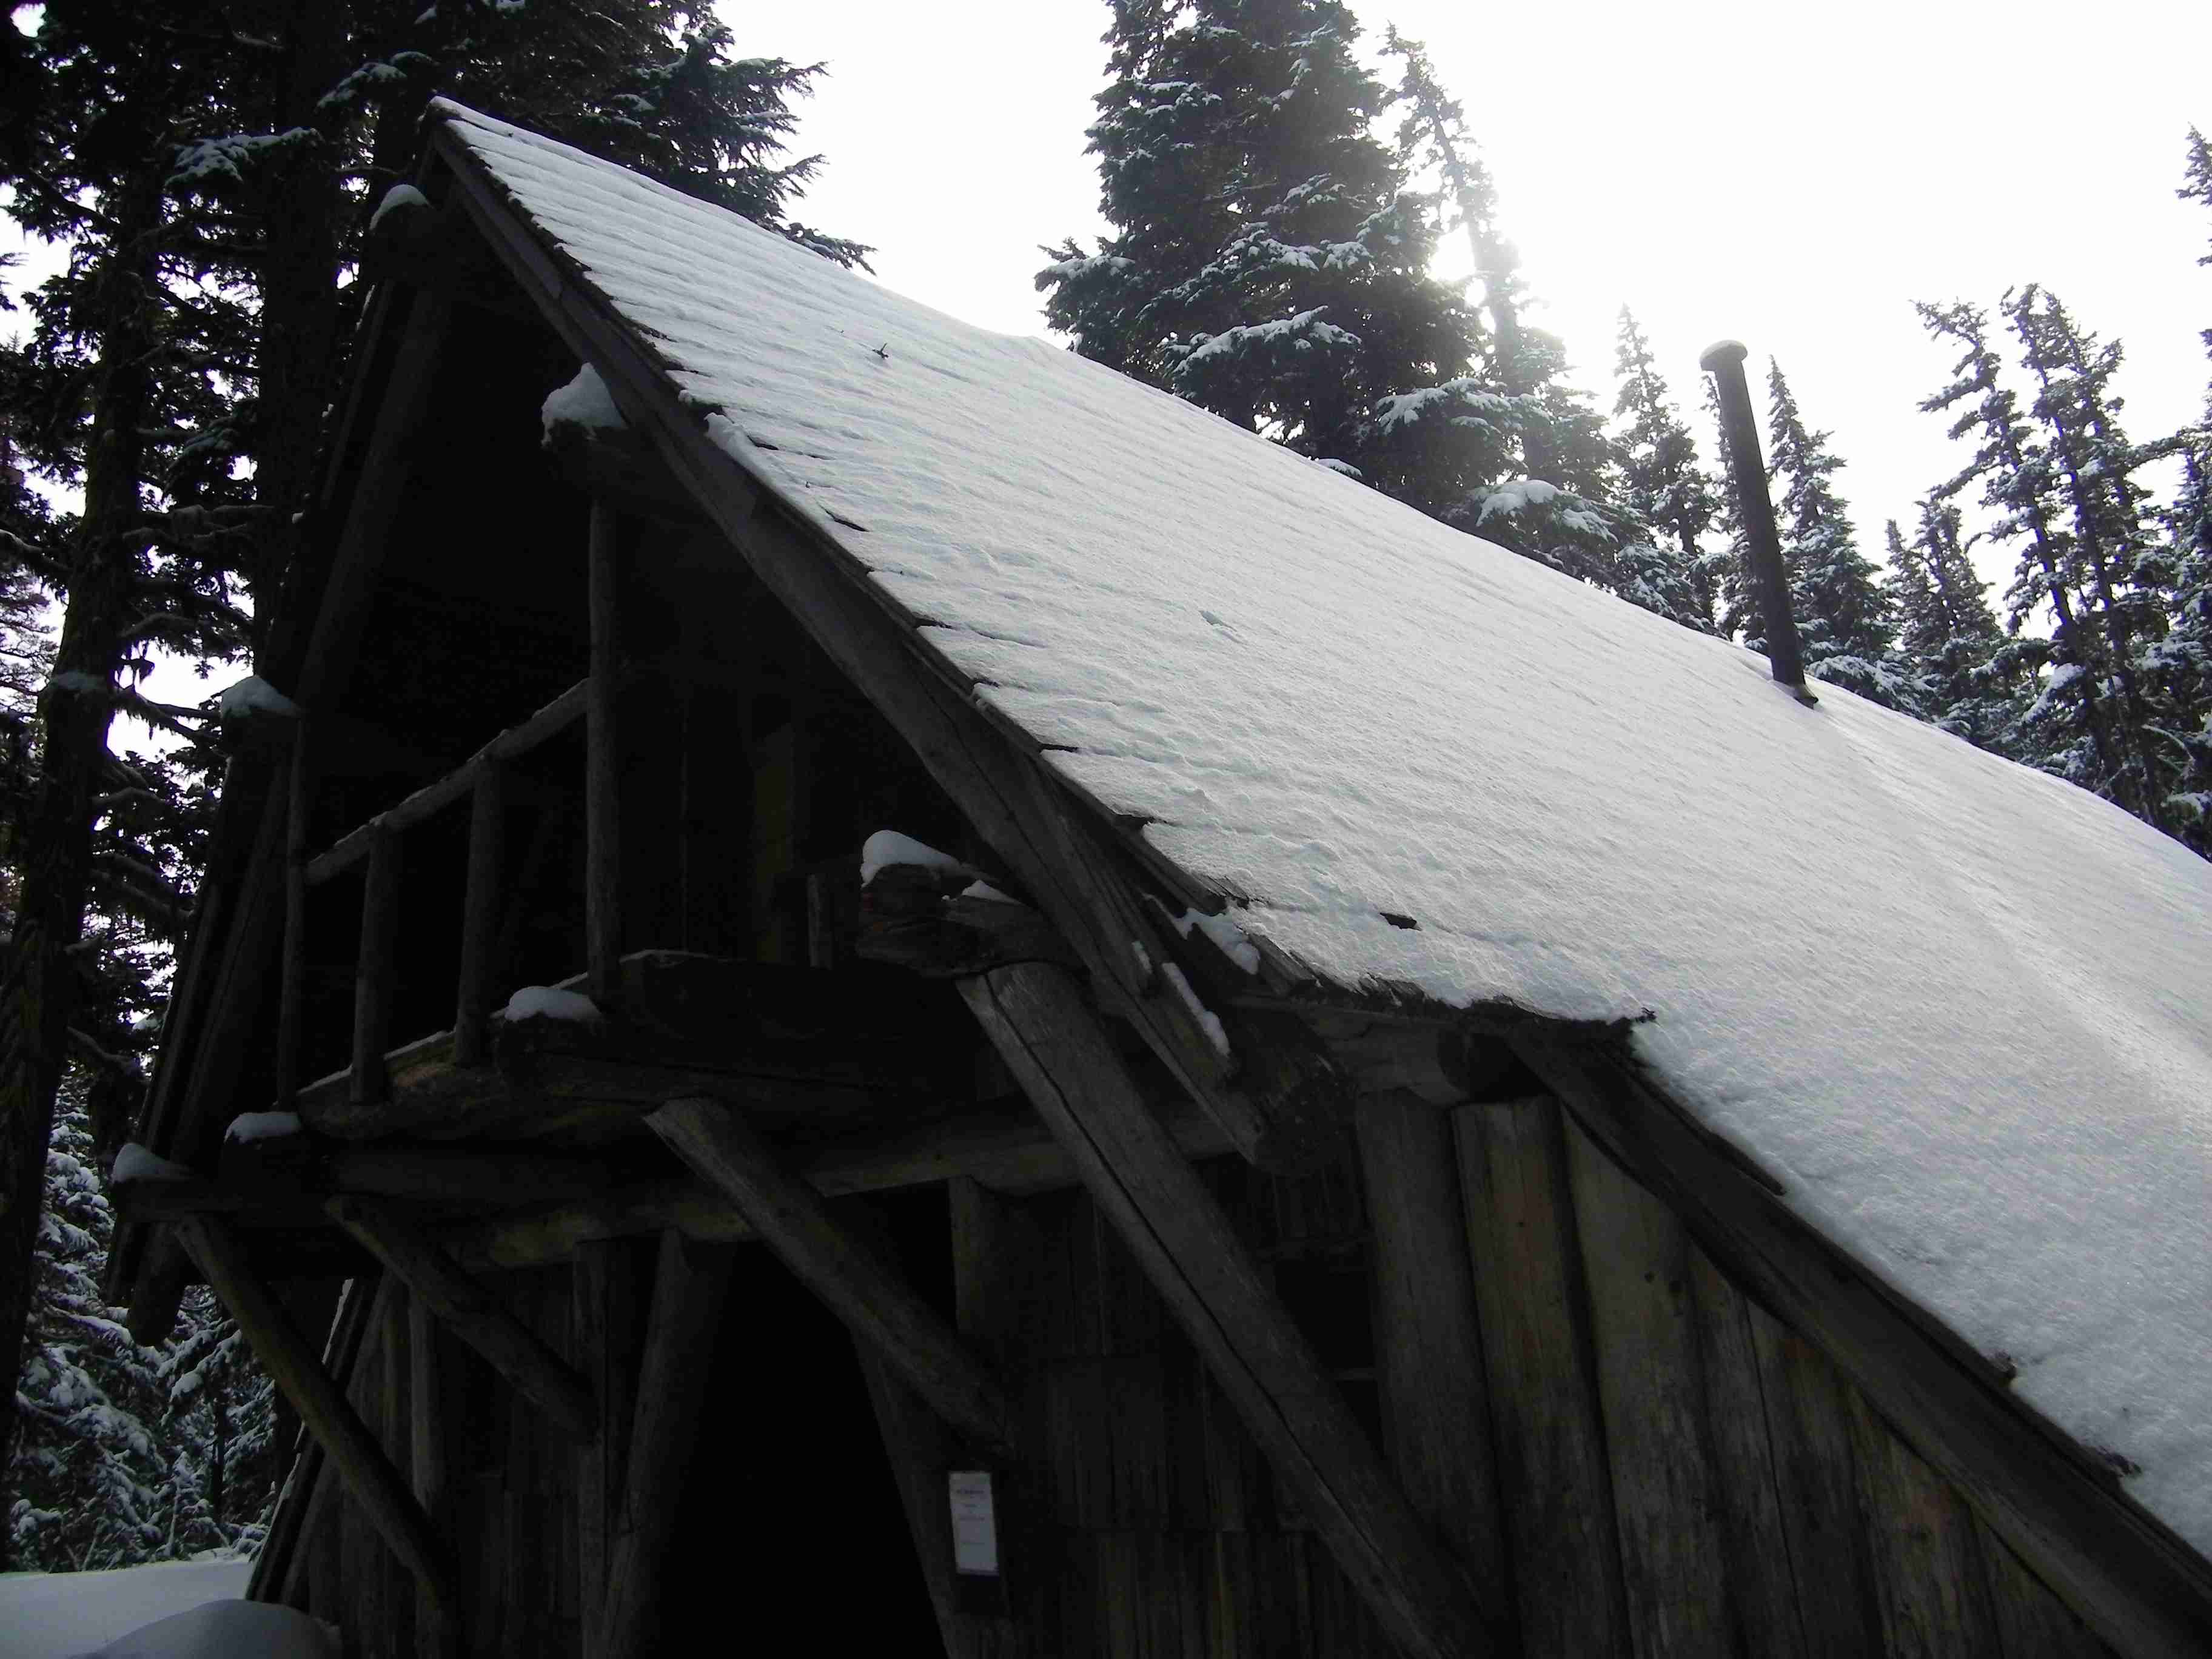 Tilly Jane Guard House   deanmyerson.org